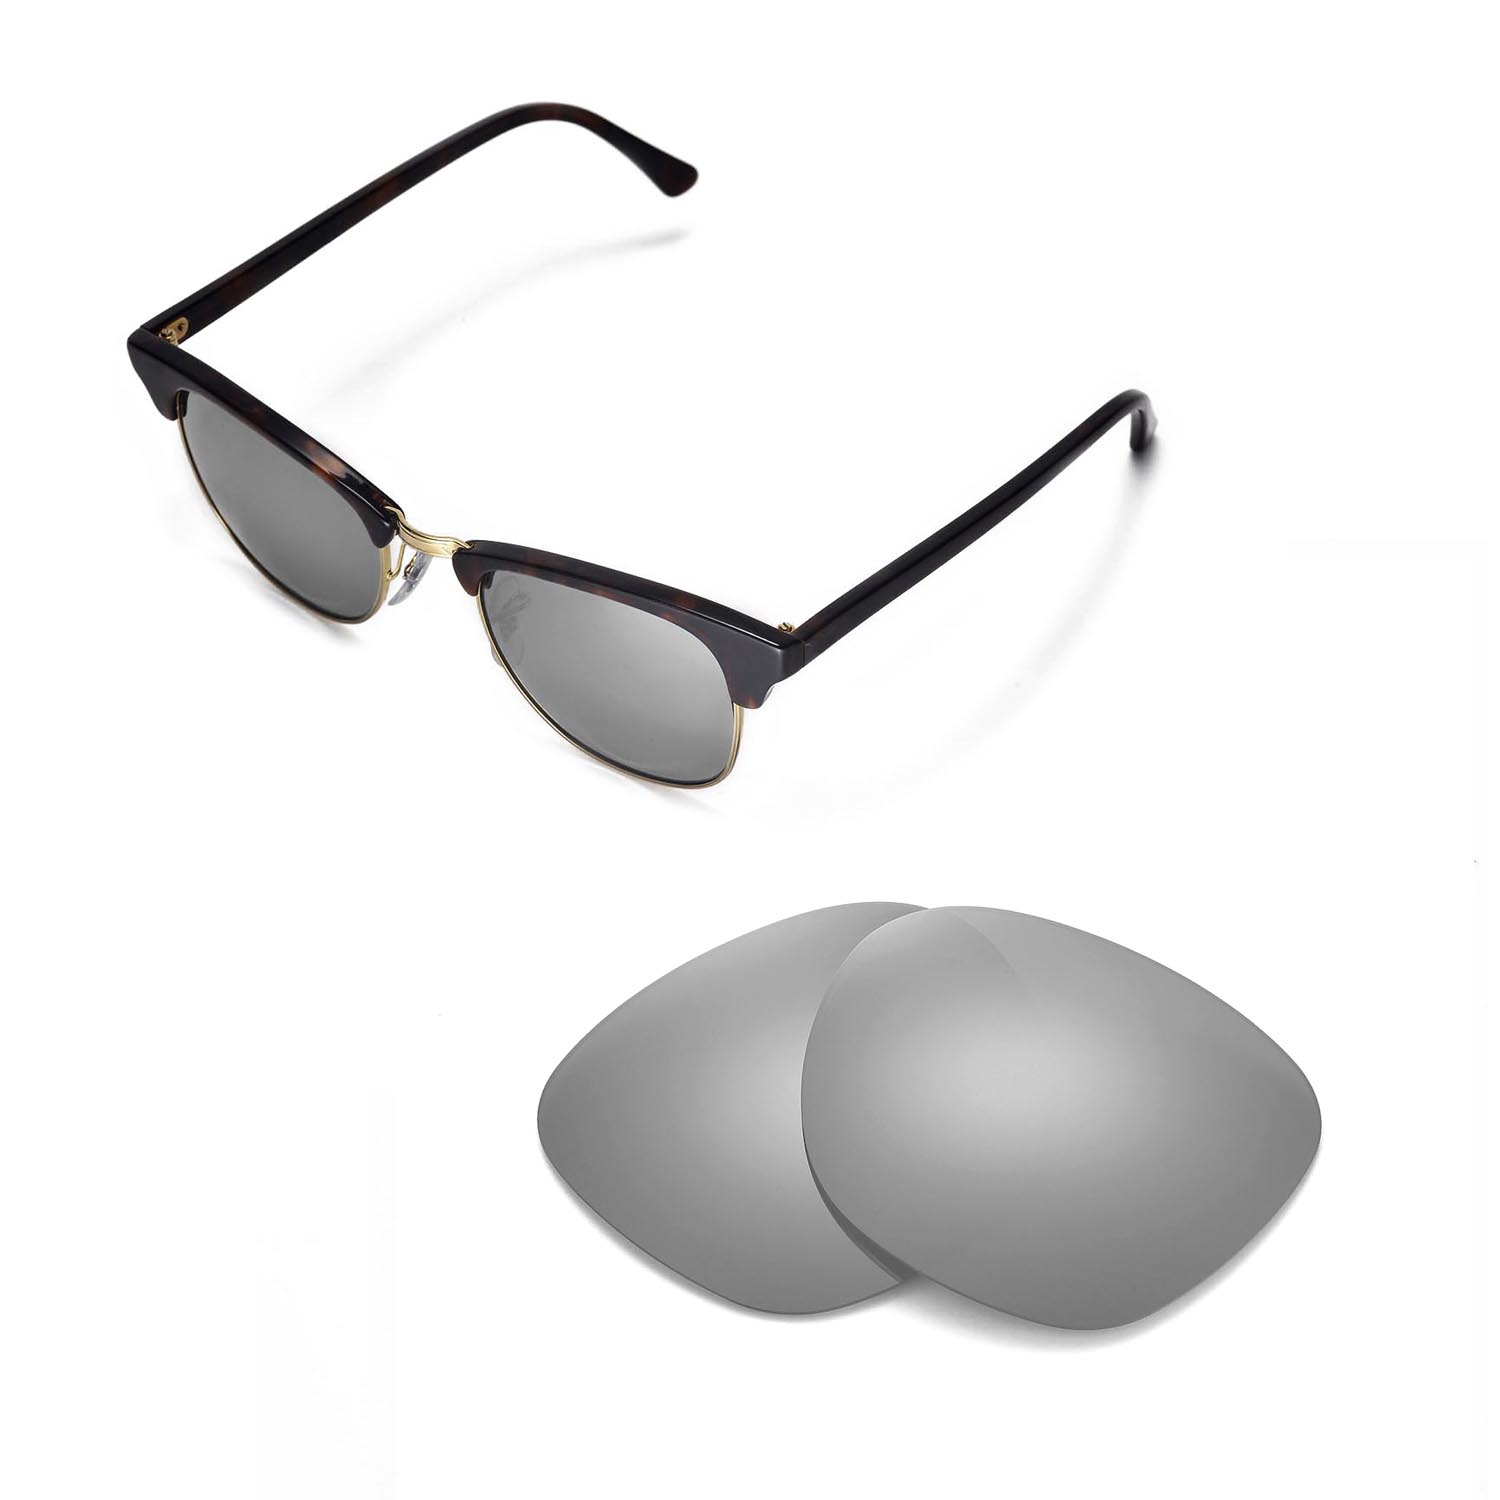 d7f78e231bf Details about Walleva Polarized Titanium Lenses For Ray-Ban Clubmaster  RB3016 51mm Sunglasses